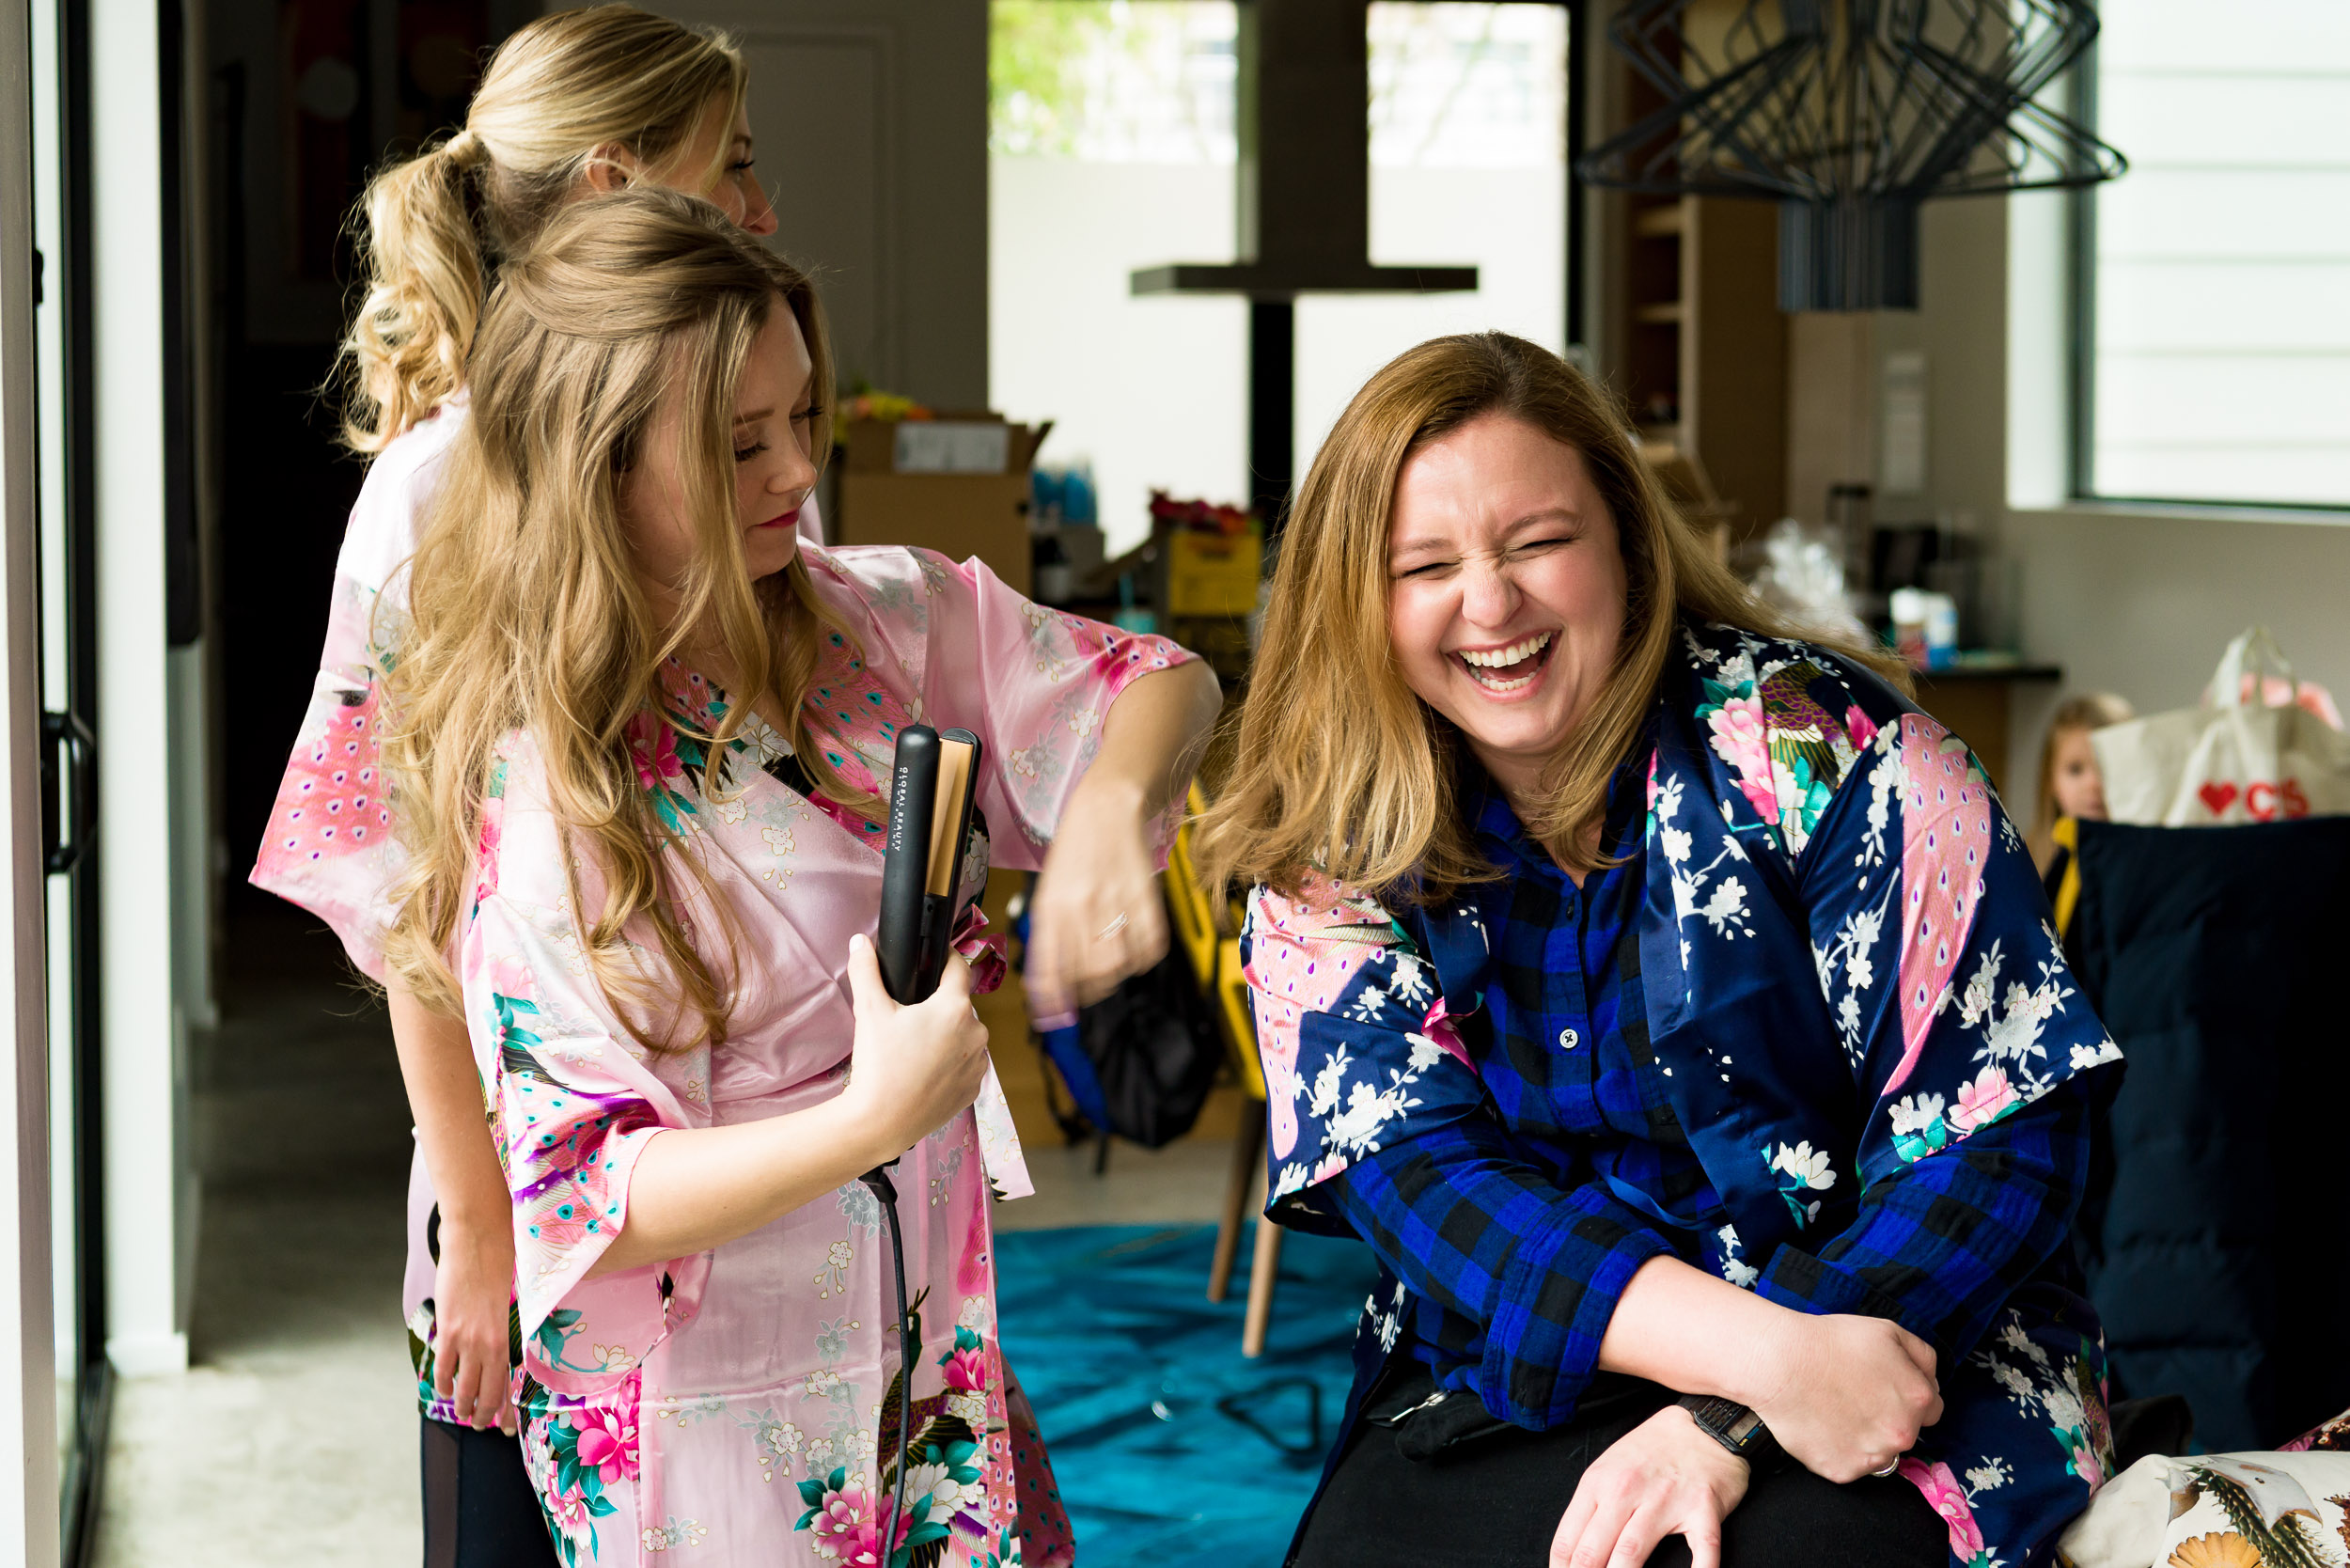 Austin-wedding-photographers-getting-ready-hair-bridesmaid-laughing